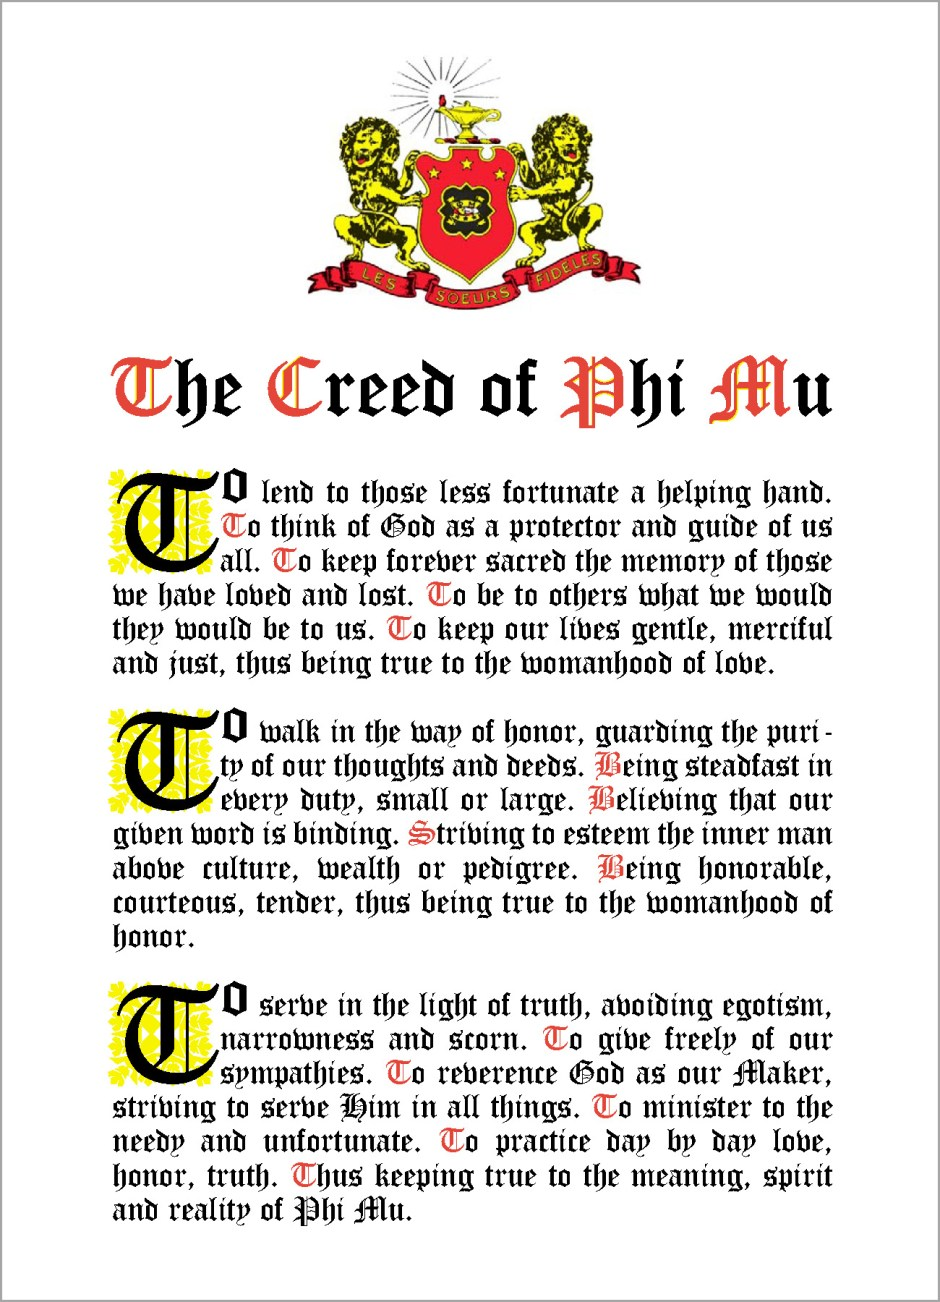 The Creed of Phi Mu